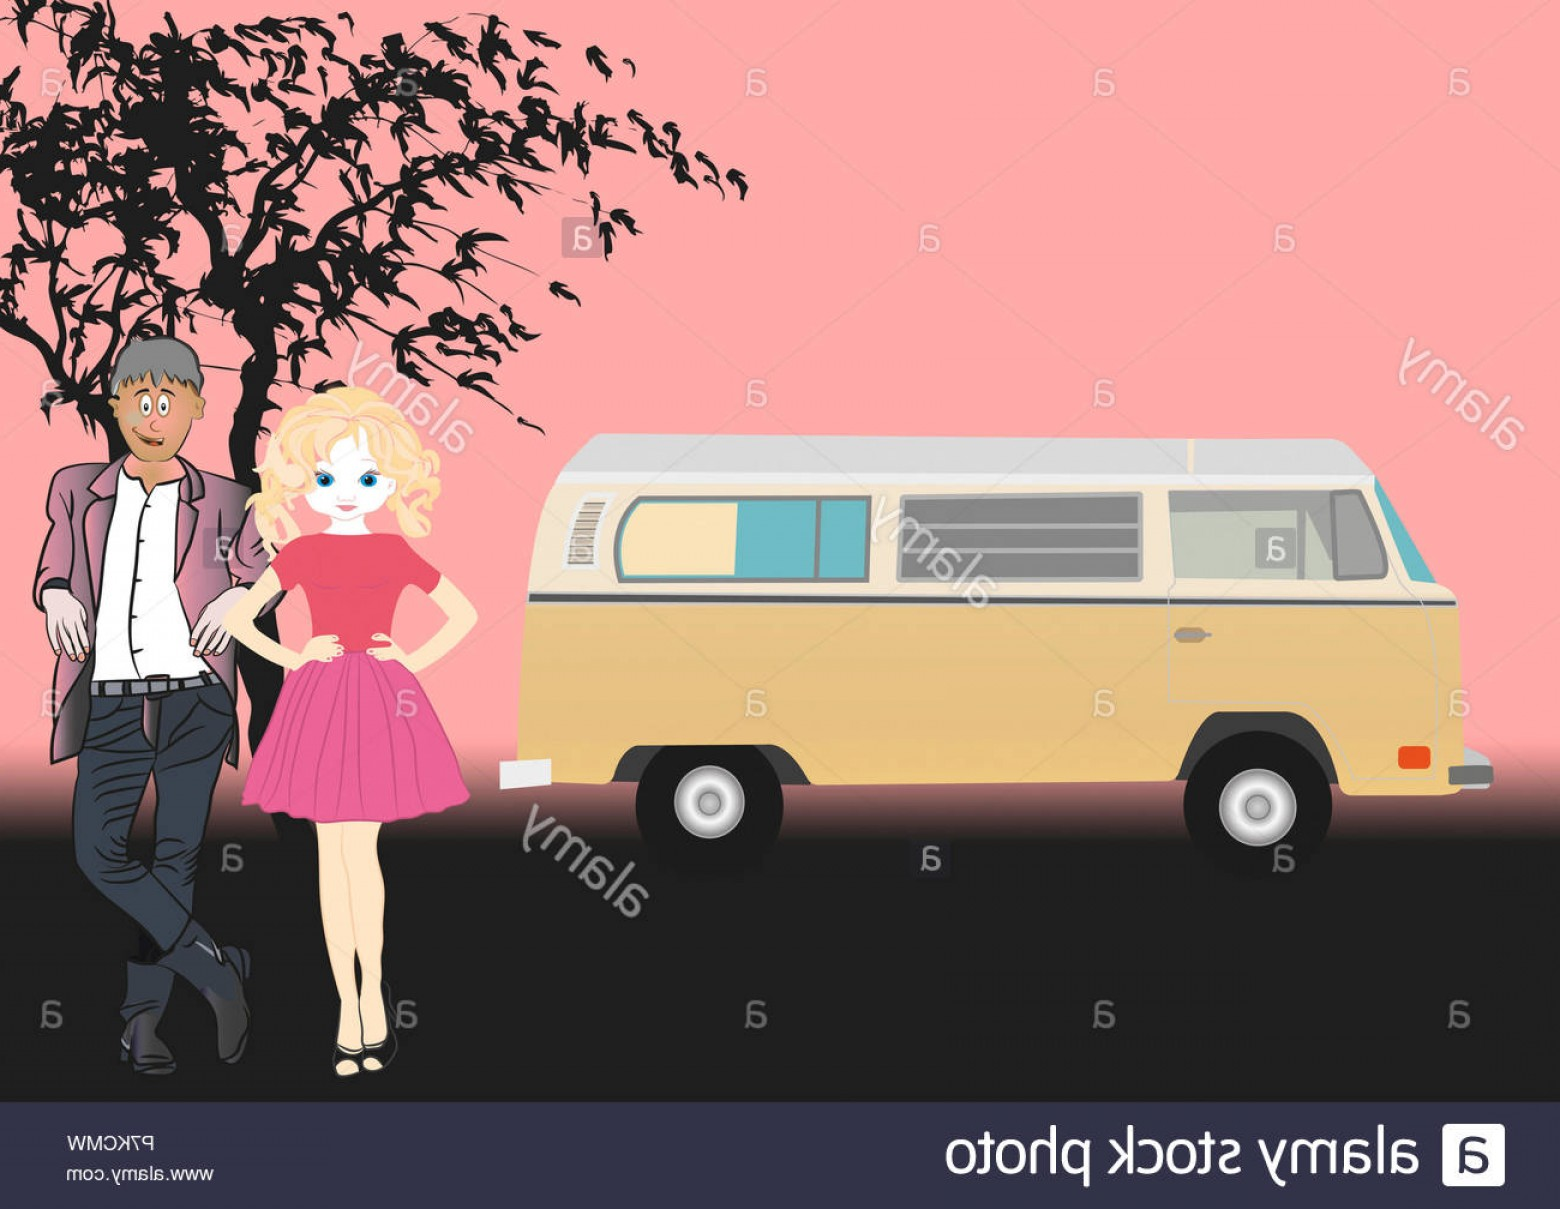 VW Vector Graphic: Vw Bulli Couple Vector Graphic Illustration Image